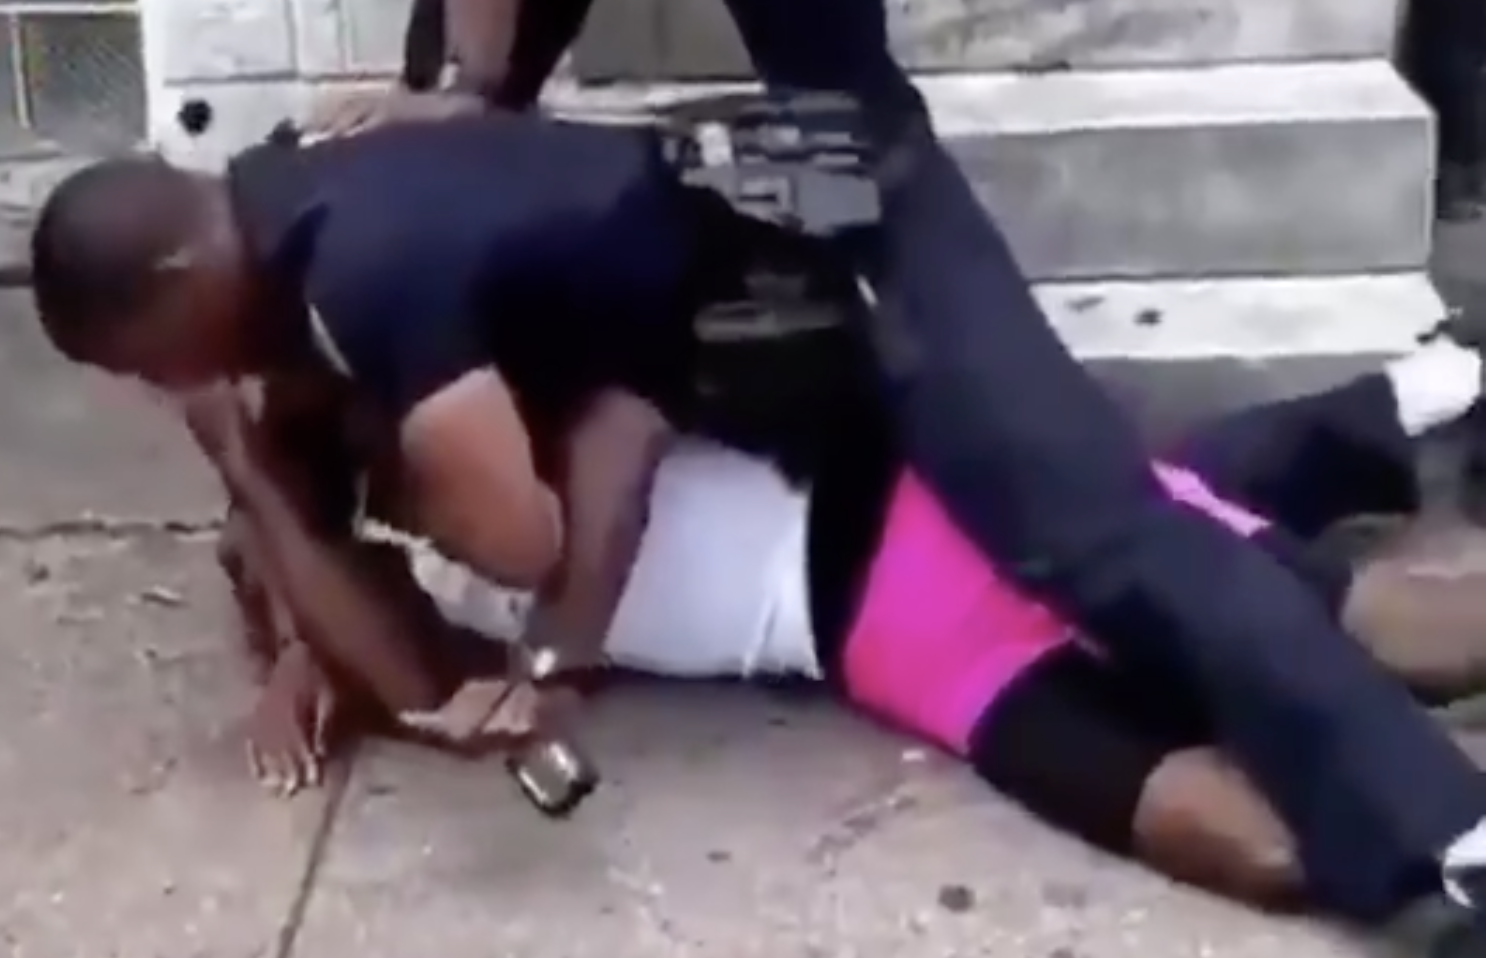 A Baltimore police officer brutally beat a black man. It's creating new problems for the department.